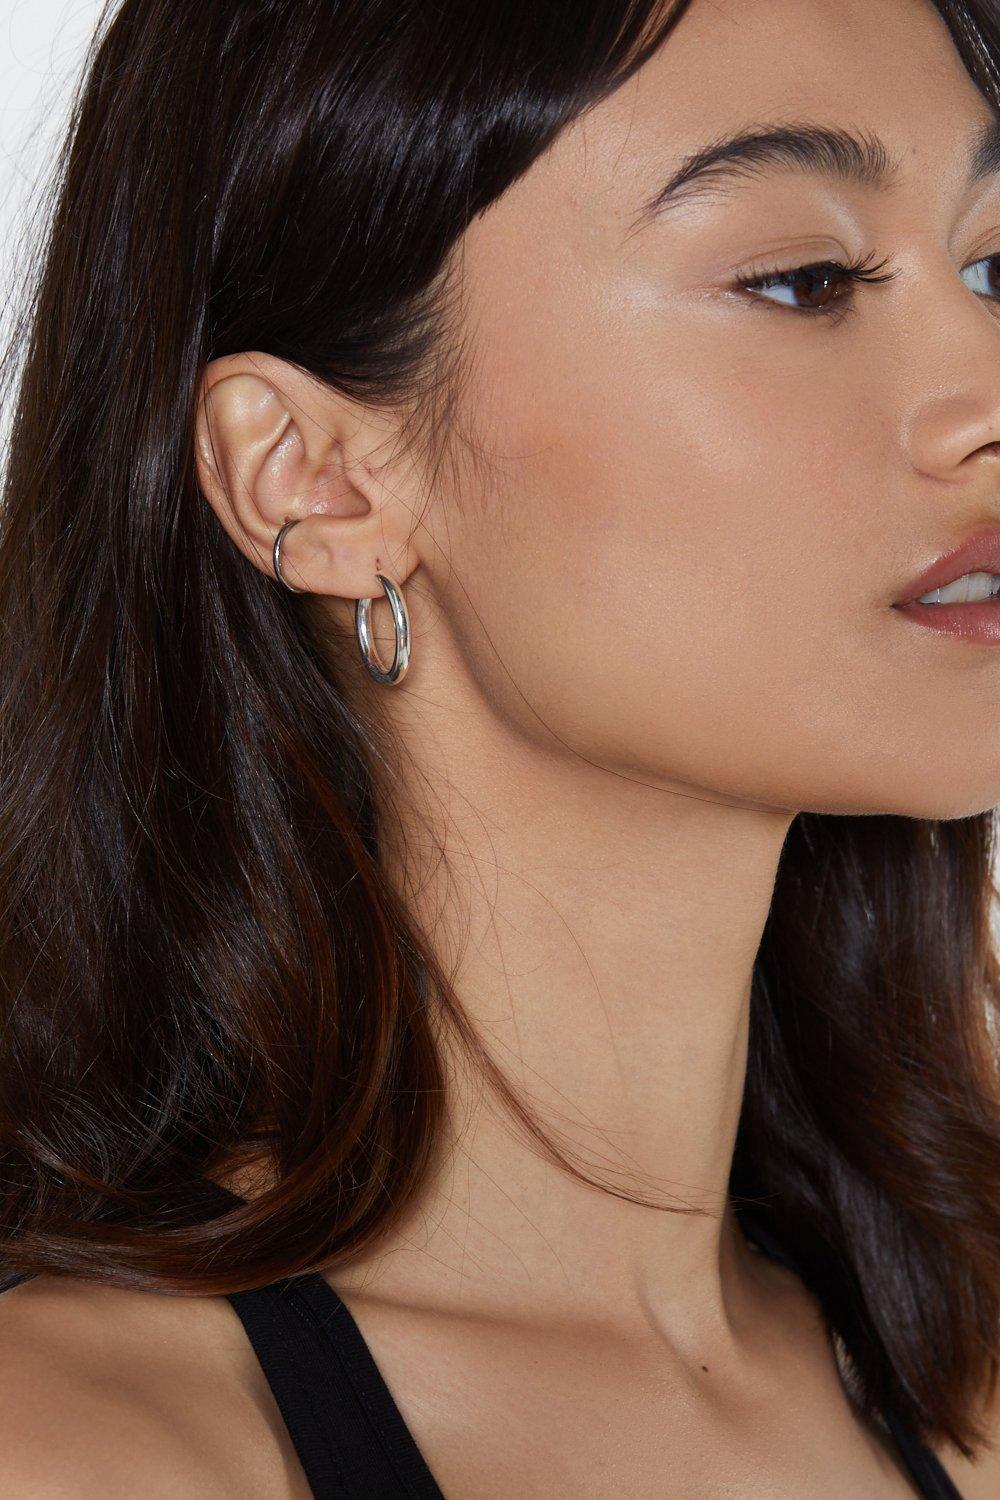 Jump Through Hoops Tube Earrings by Nasty Gal